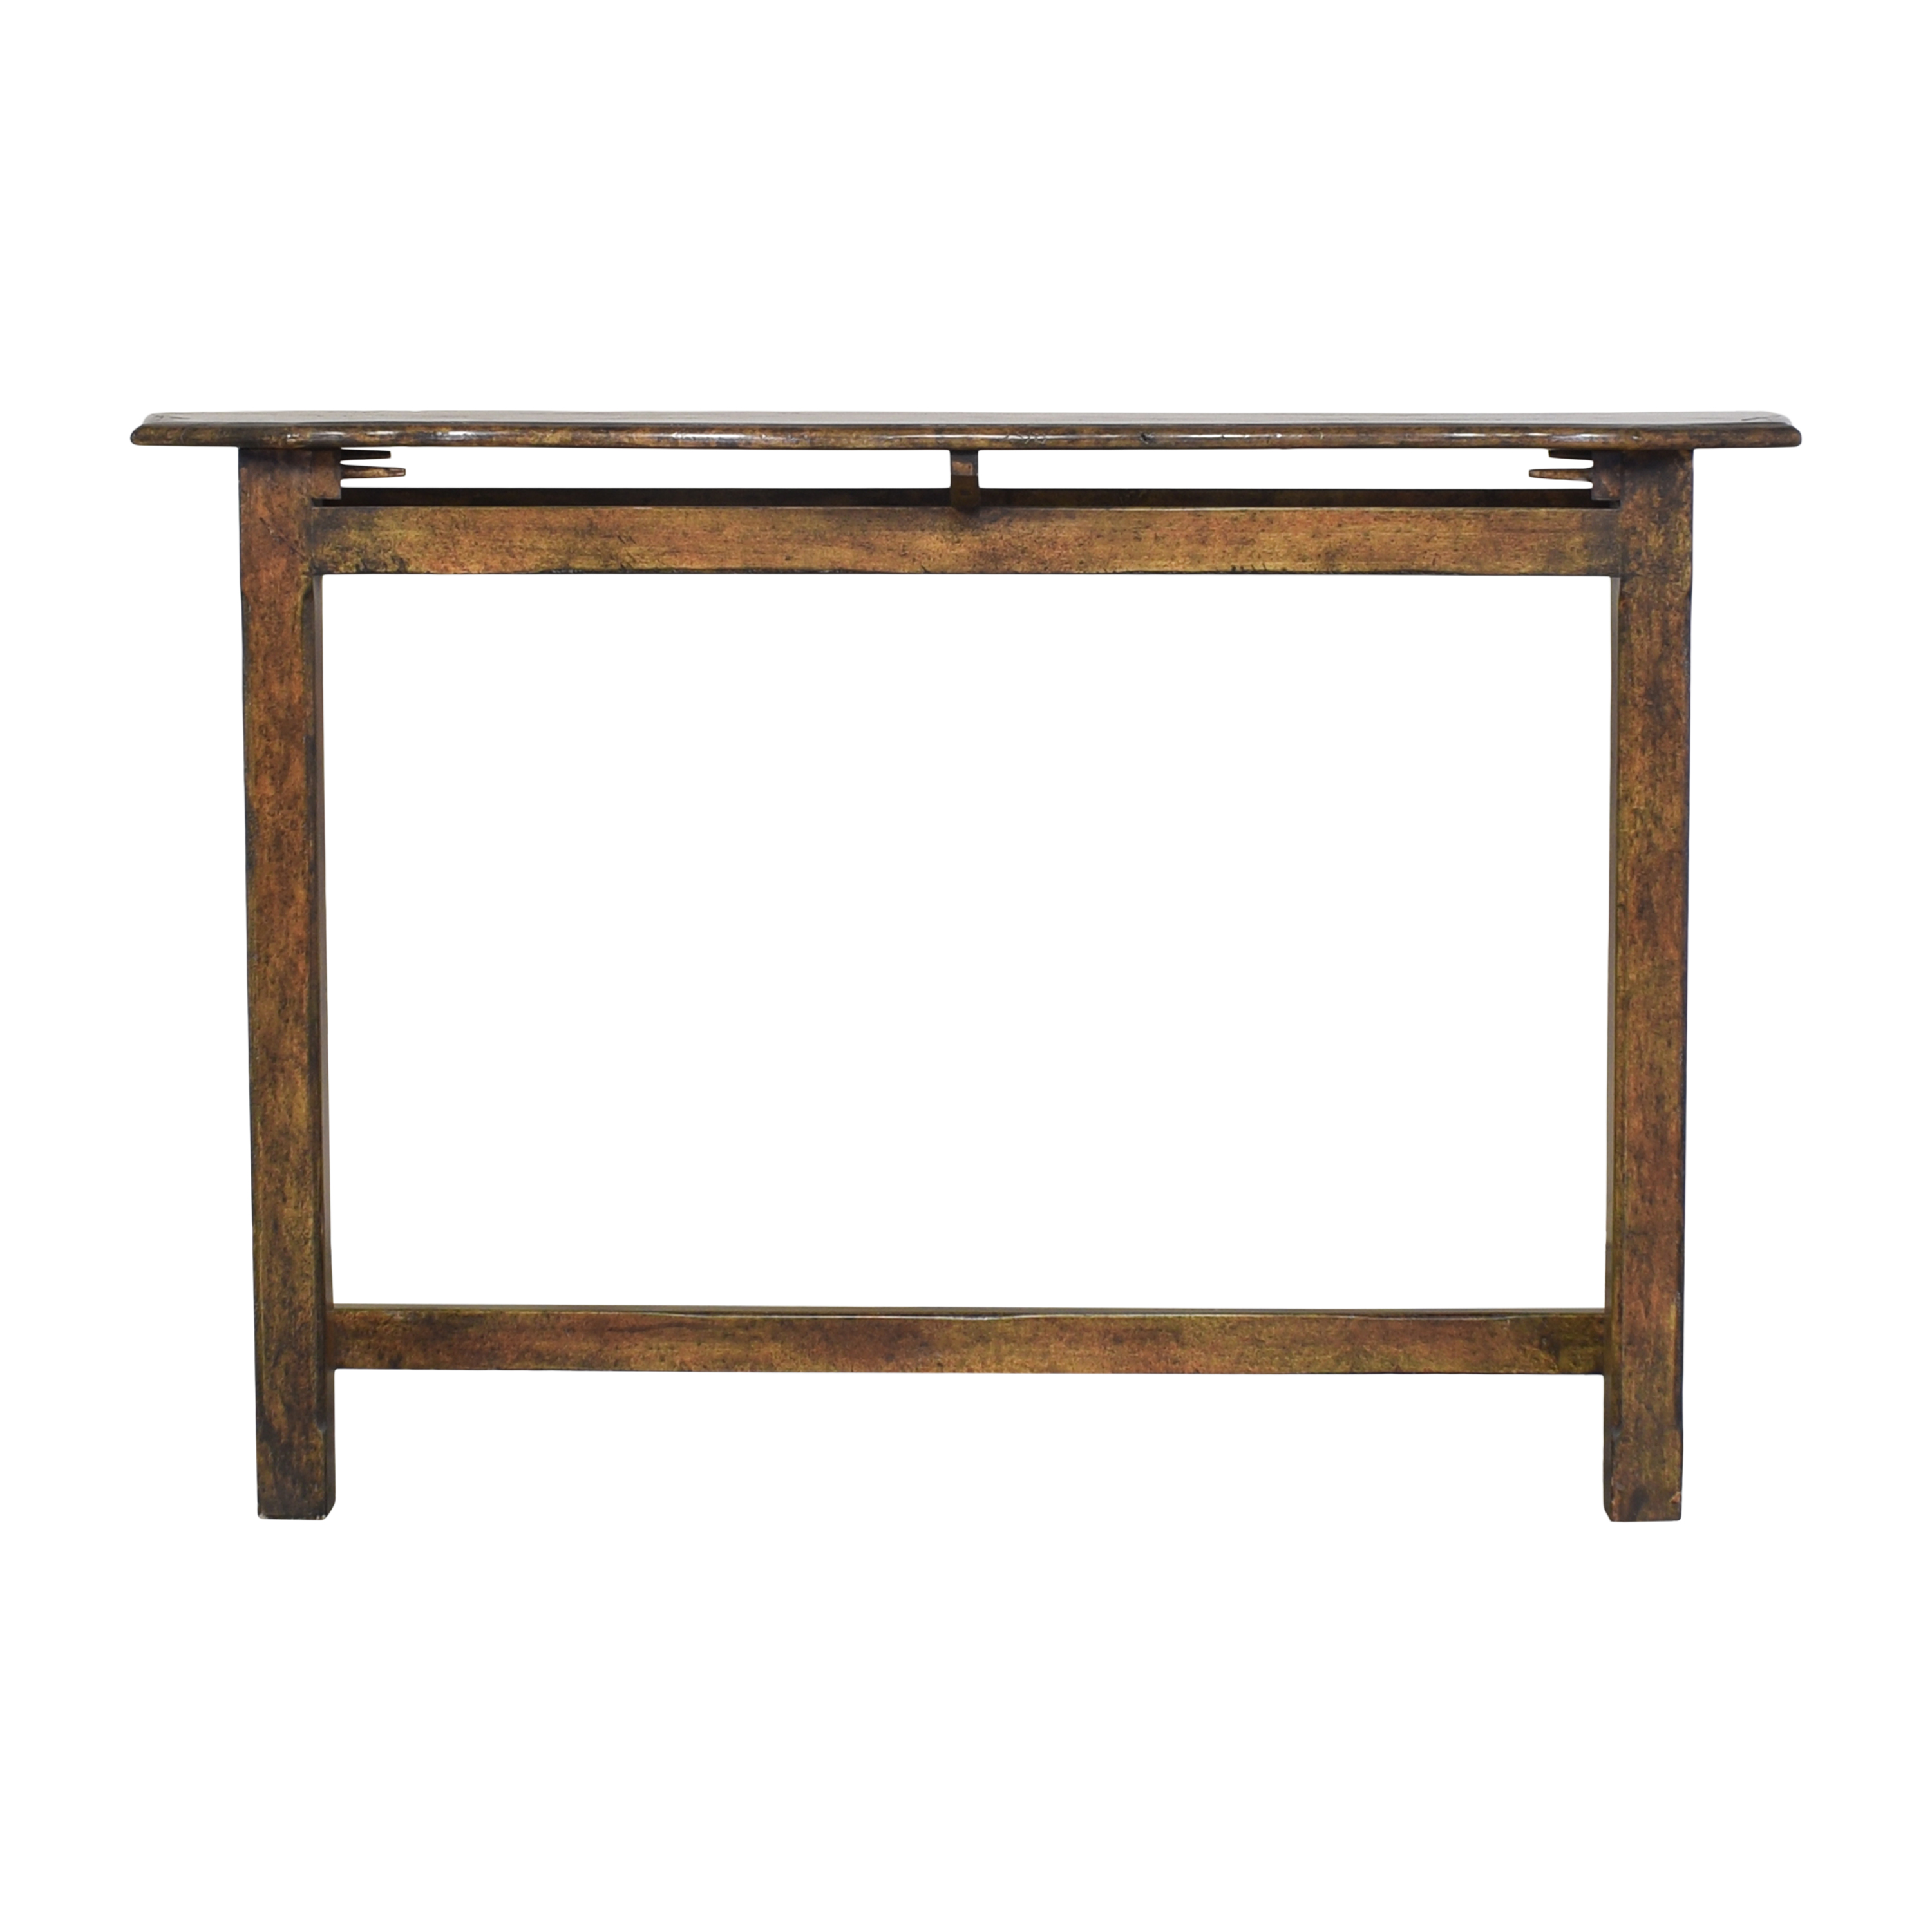 Dennis & Leen Dennis & Leen Tuscan Console Table pa